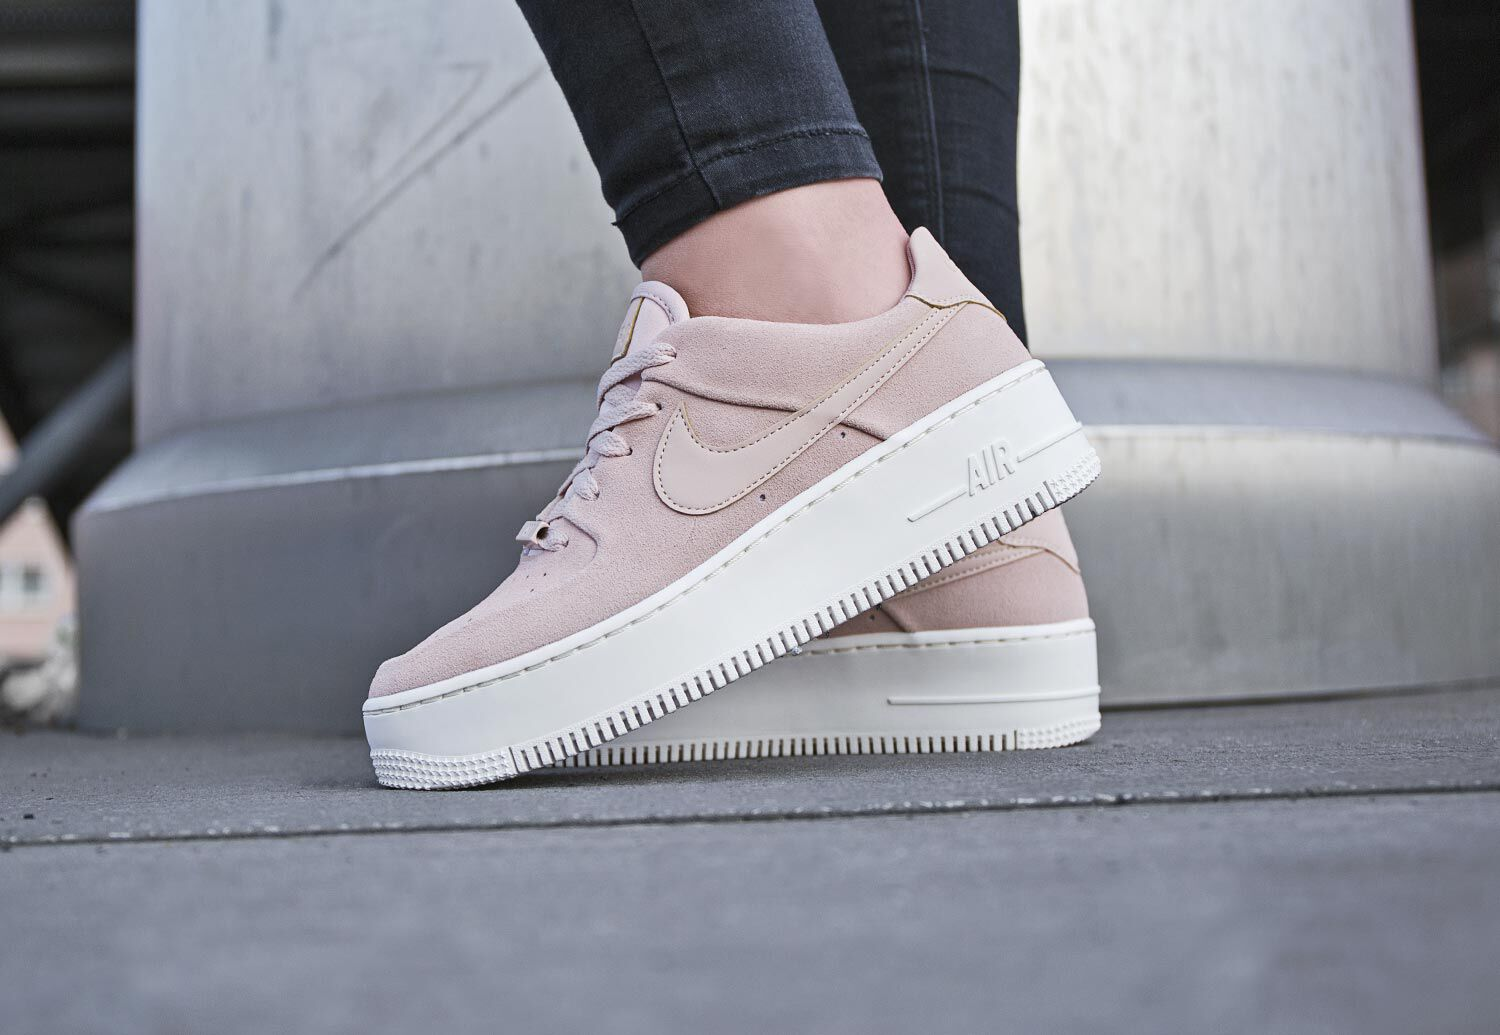 Nike Air Force 1 Sage Low W Sneakers Low At Stylefile